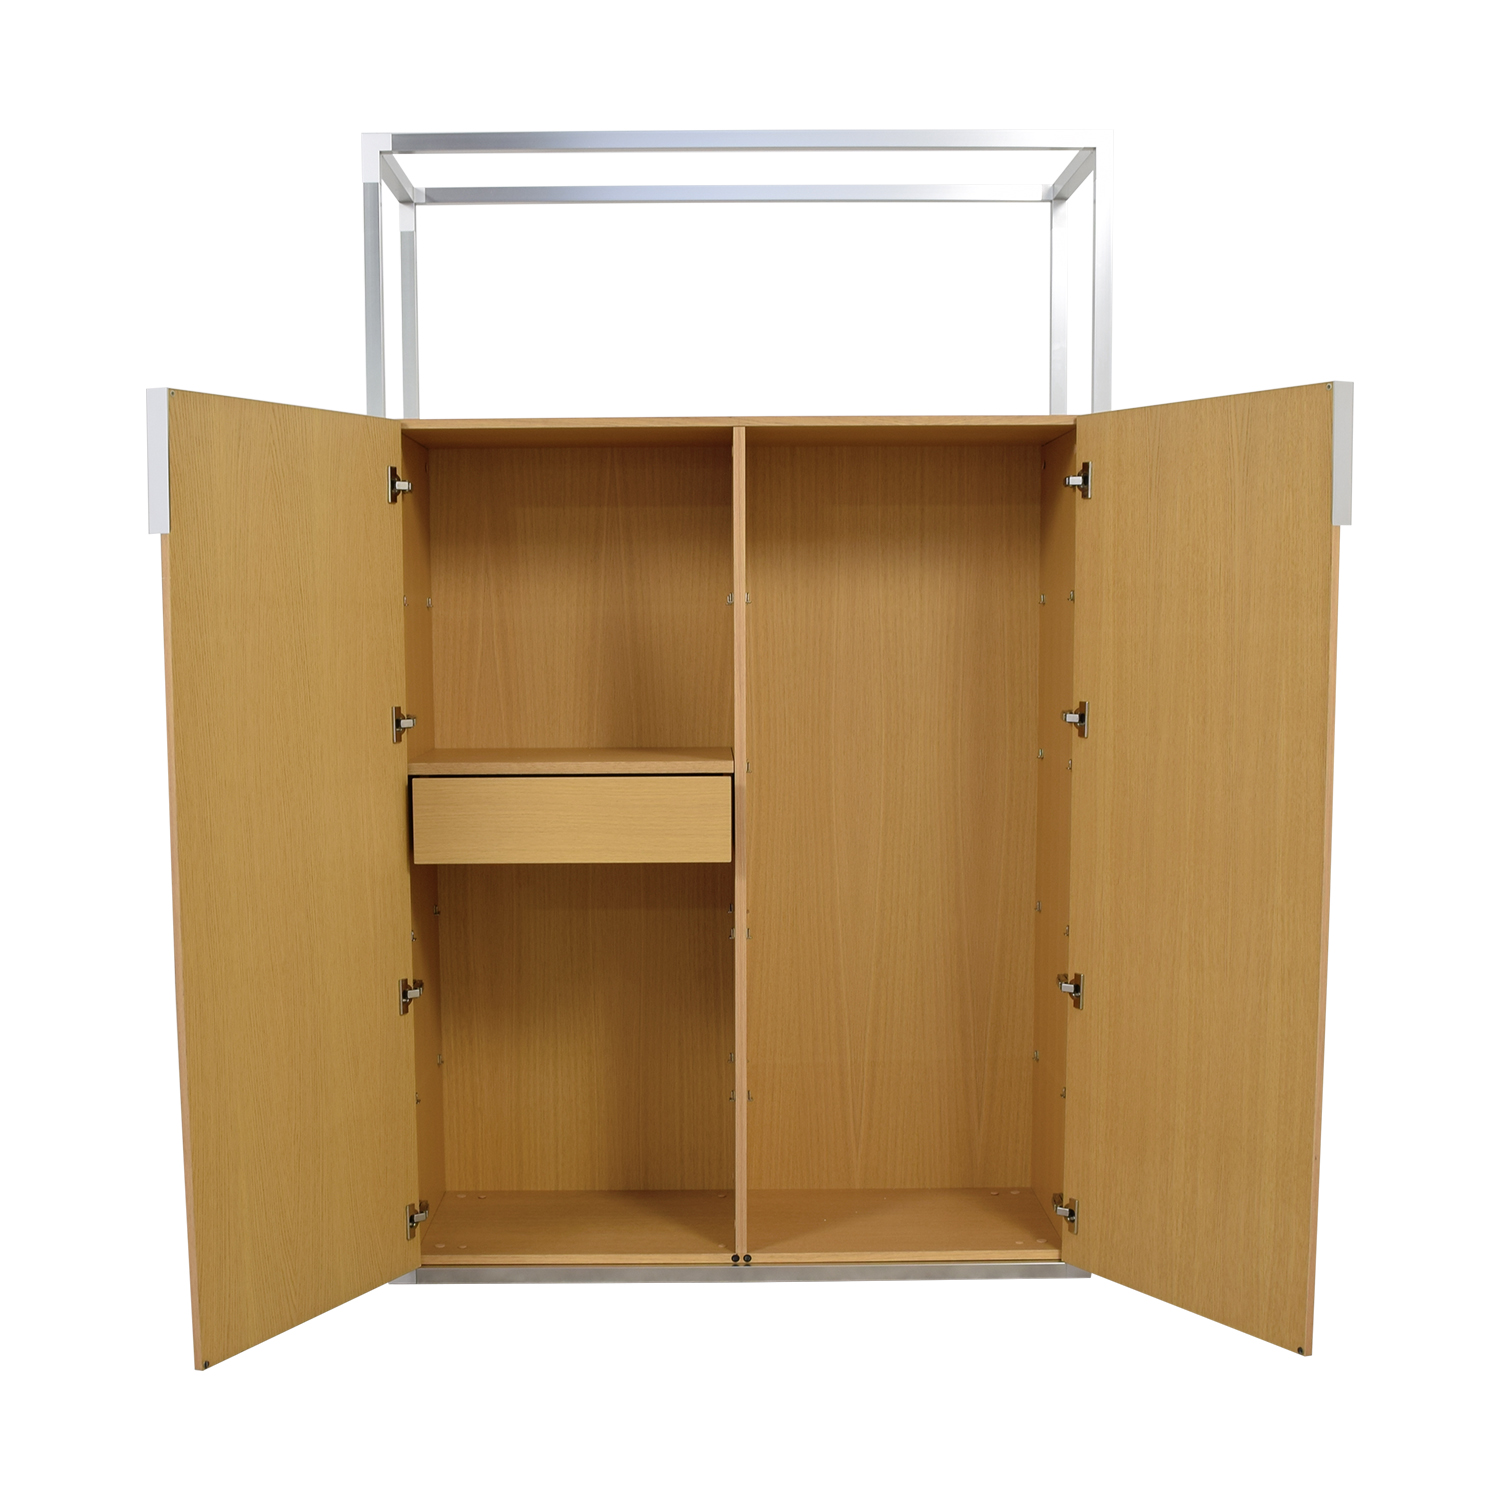 Ligne Roset Ligne Roset Wooden Wardrobe with Metal Top Frame nj